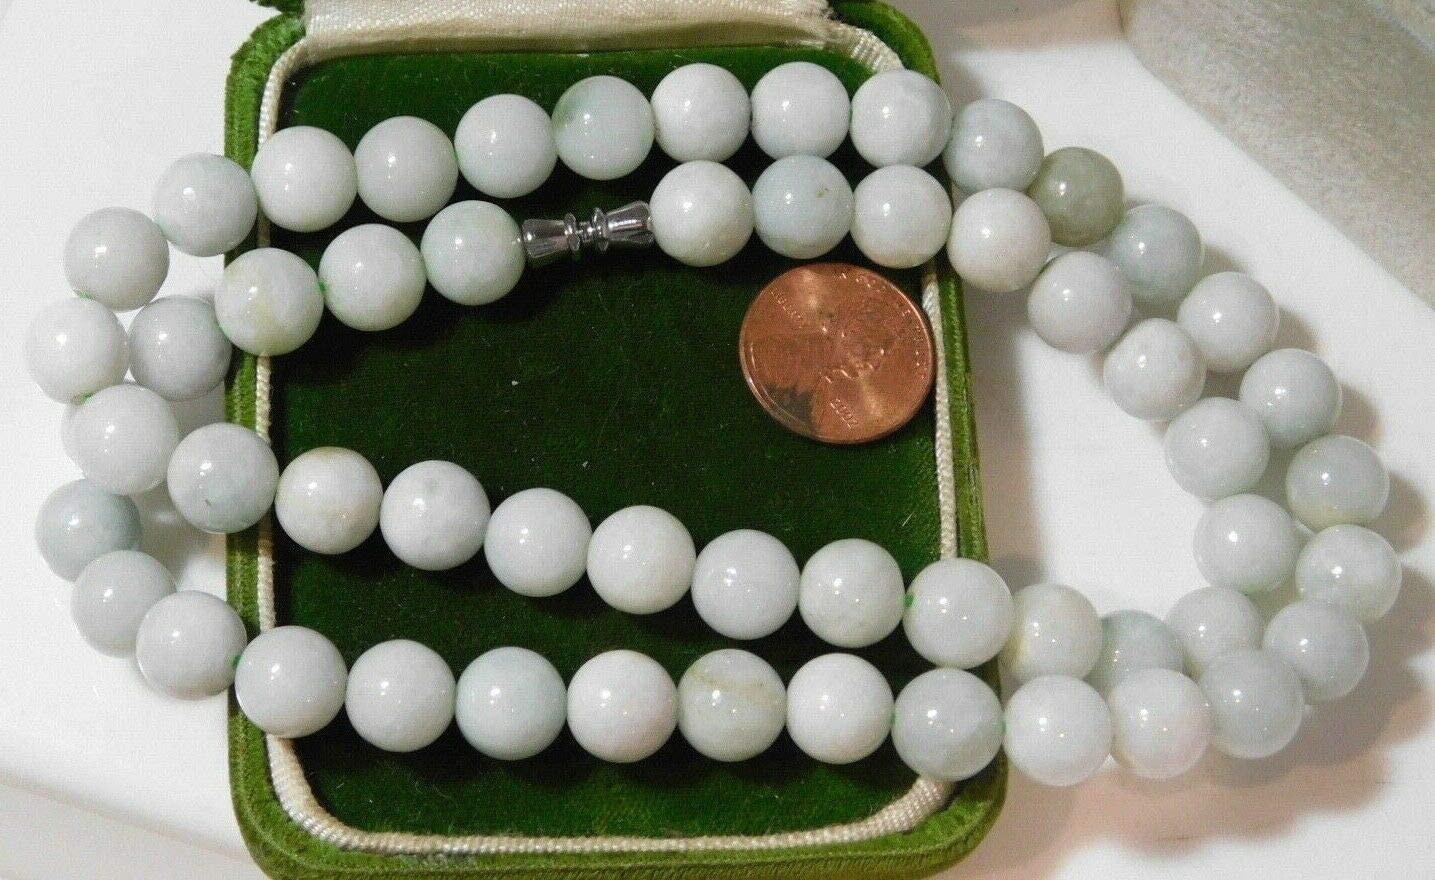 PROMOTION Certificated Grade A Natural Jade et Hand carved Necklace Girl Chain Jadeite Round bead Size\uff1a6*9mm Green gemstone Burma burmese